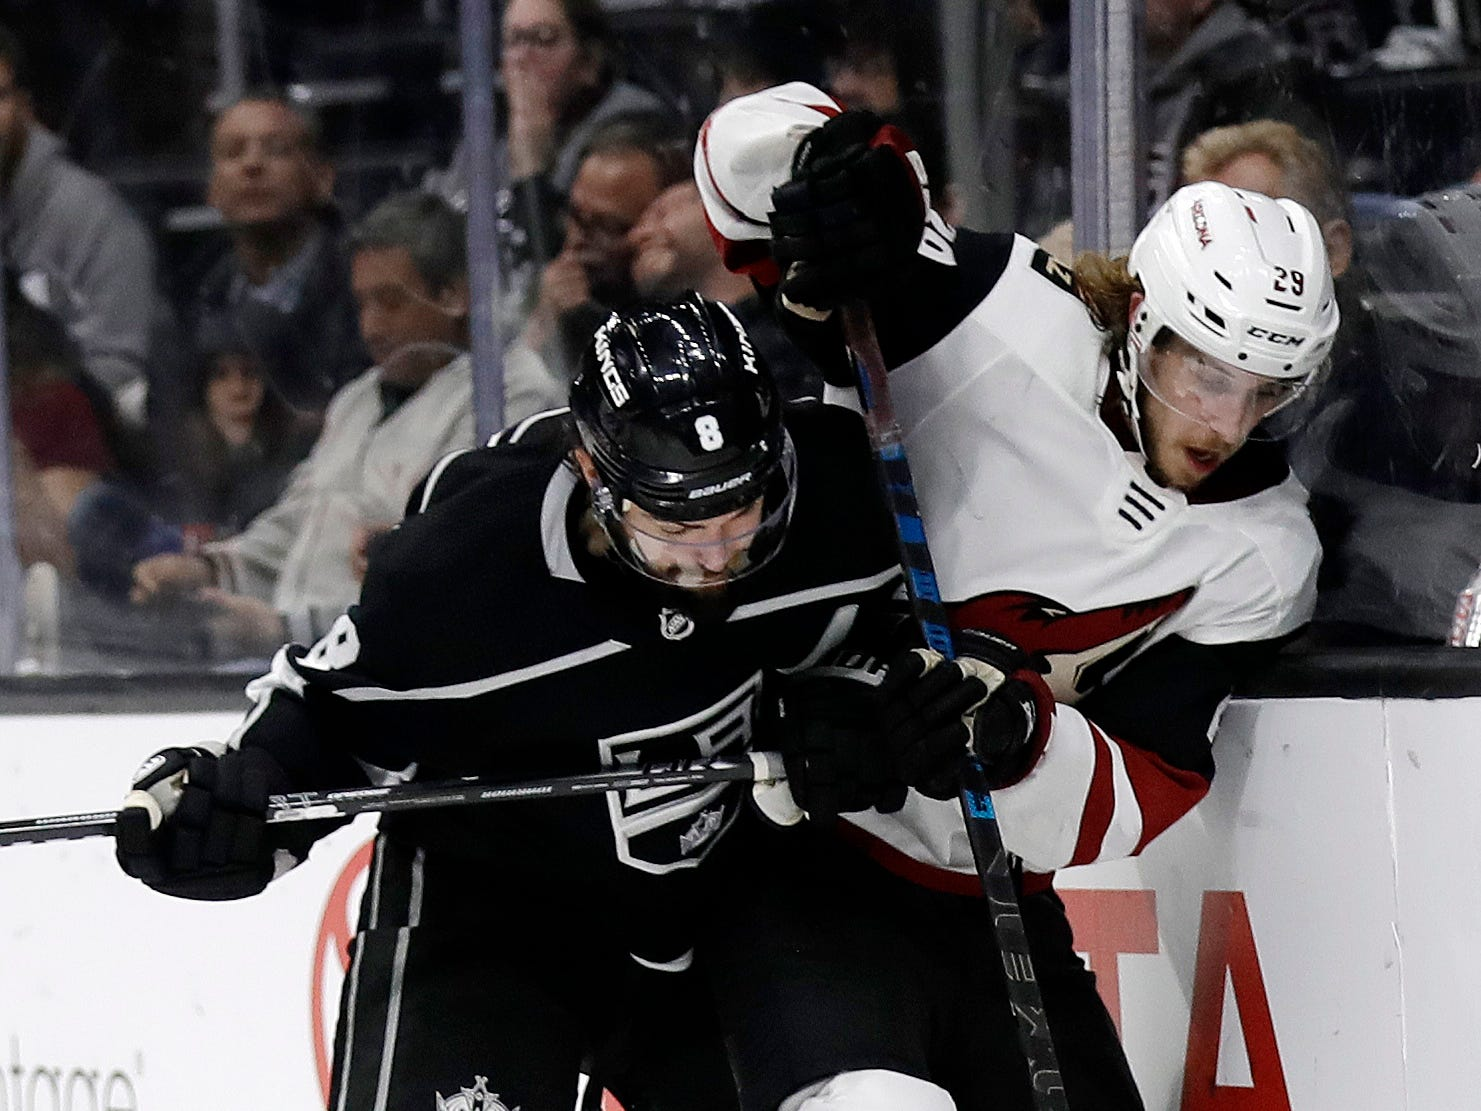 Los Angeles Kings' Drew Doughty, left, presses Arizona Coyotes' Mario Kempe against the boards during the third period of an NHL hockey game Tuesday, Dec. 4, 2018, in Los Angeles.